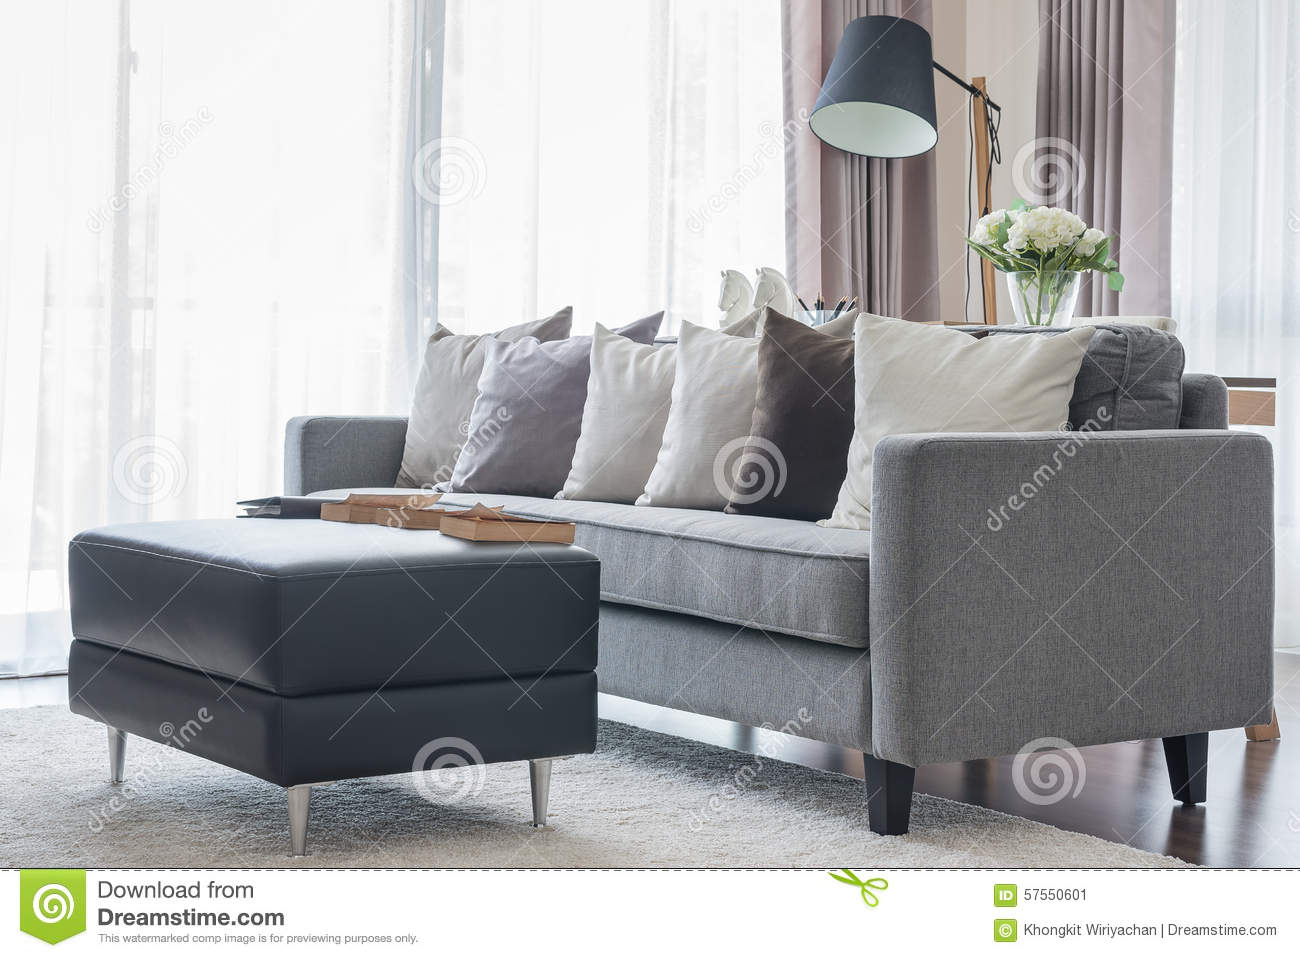 Contemporary modern living room with grey sofa royalty free stock image - Wandspiegel groay modern ...